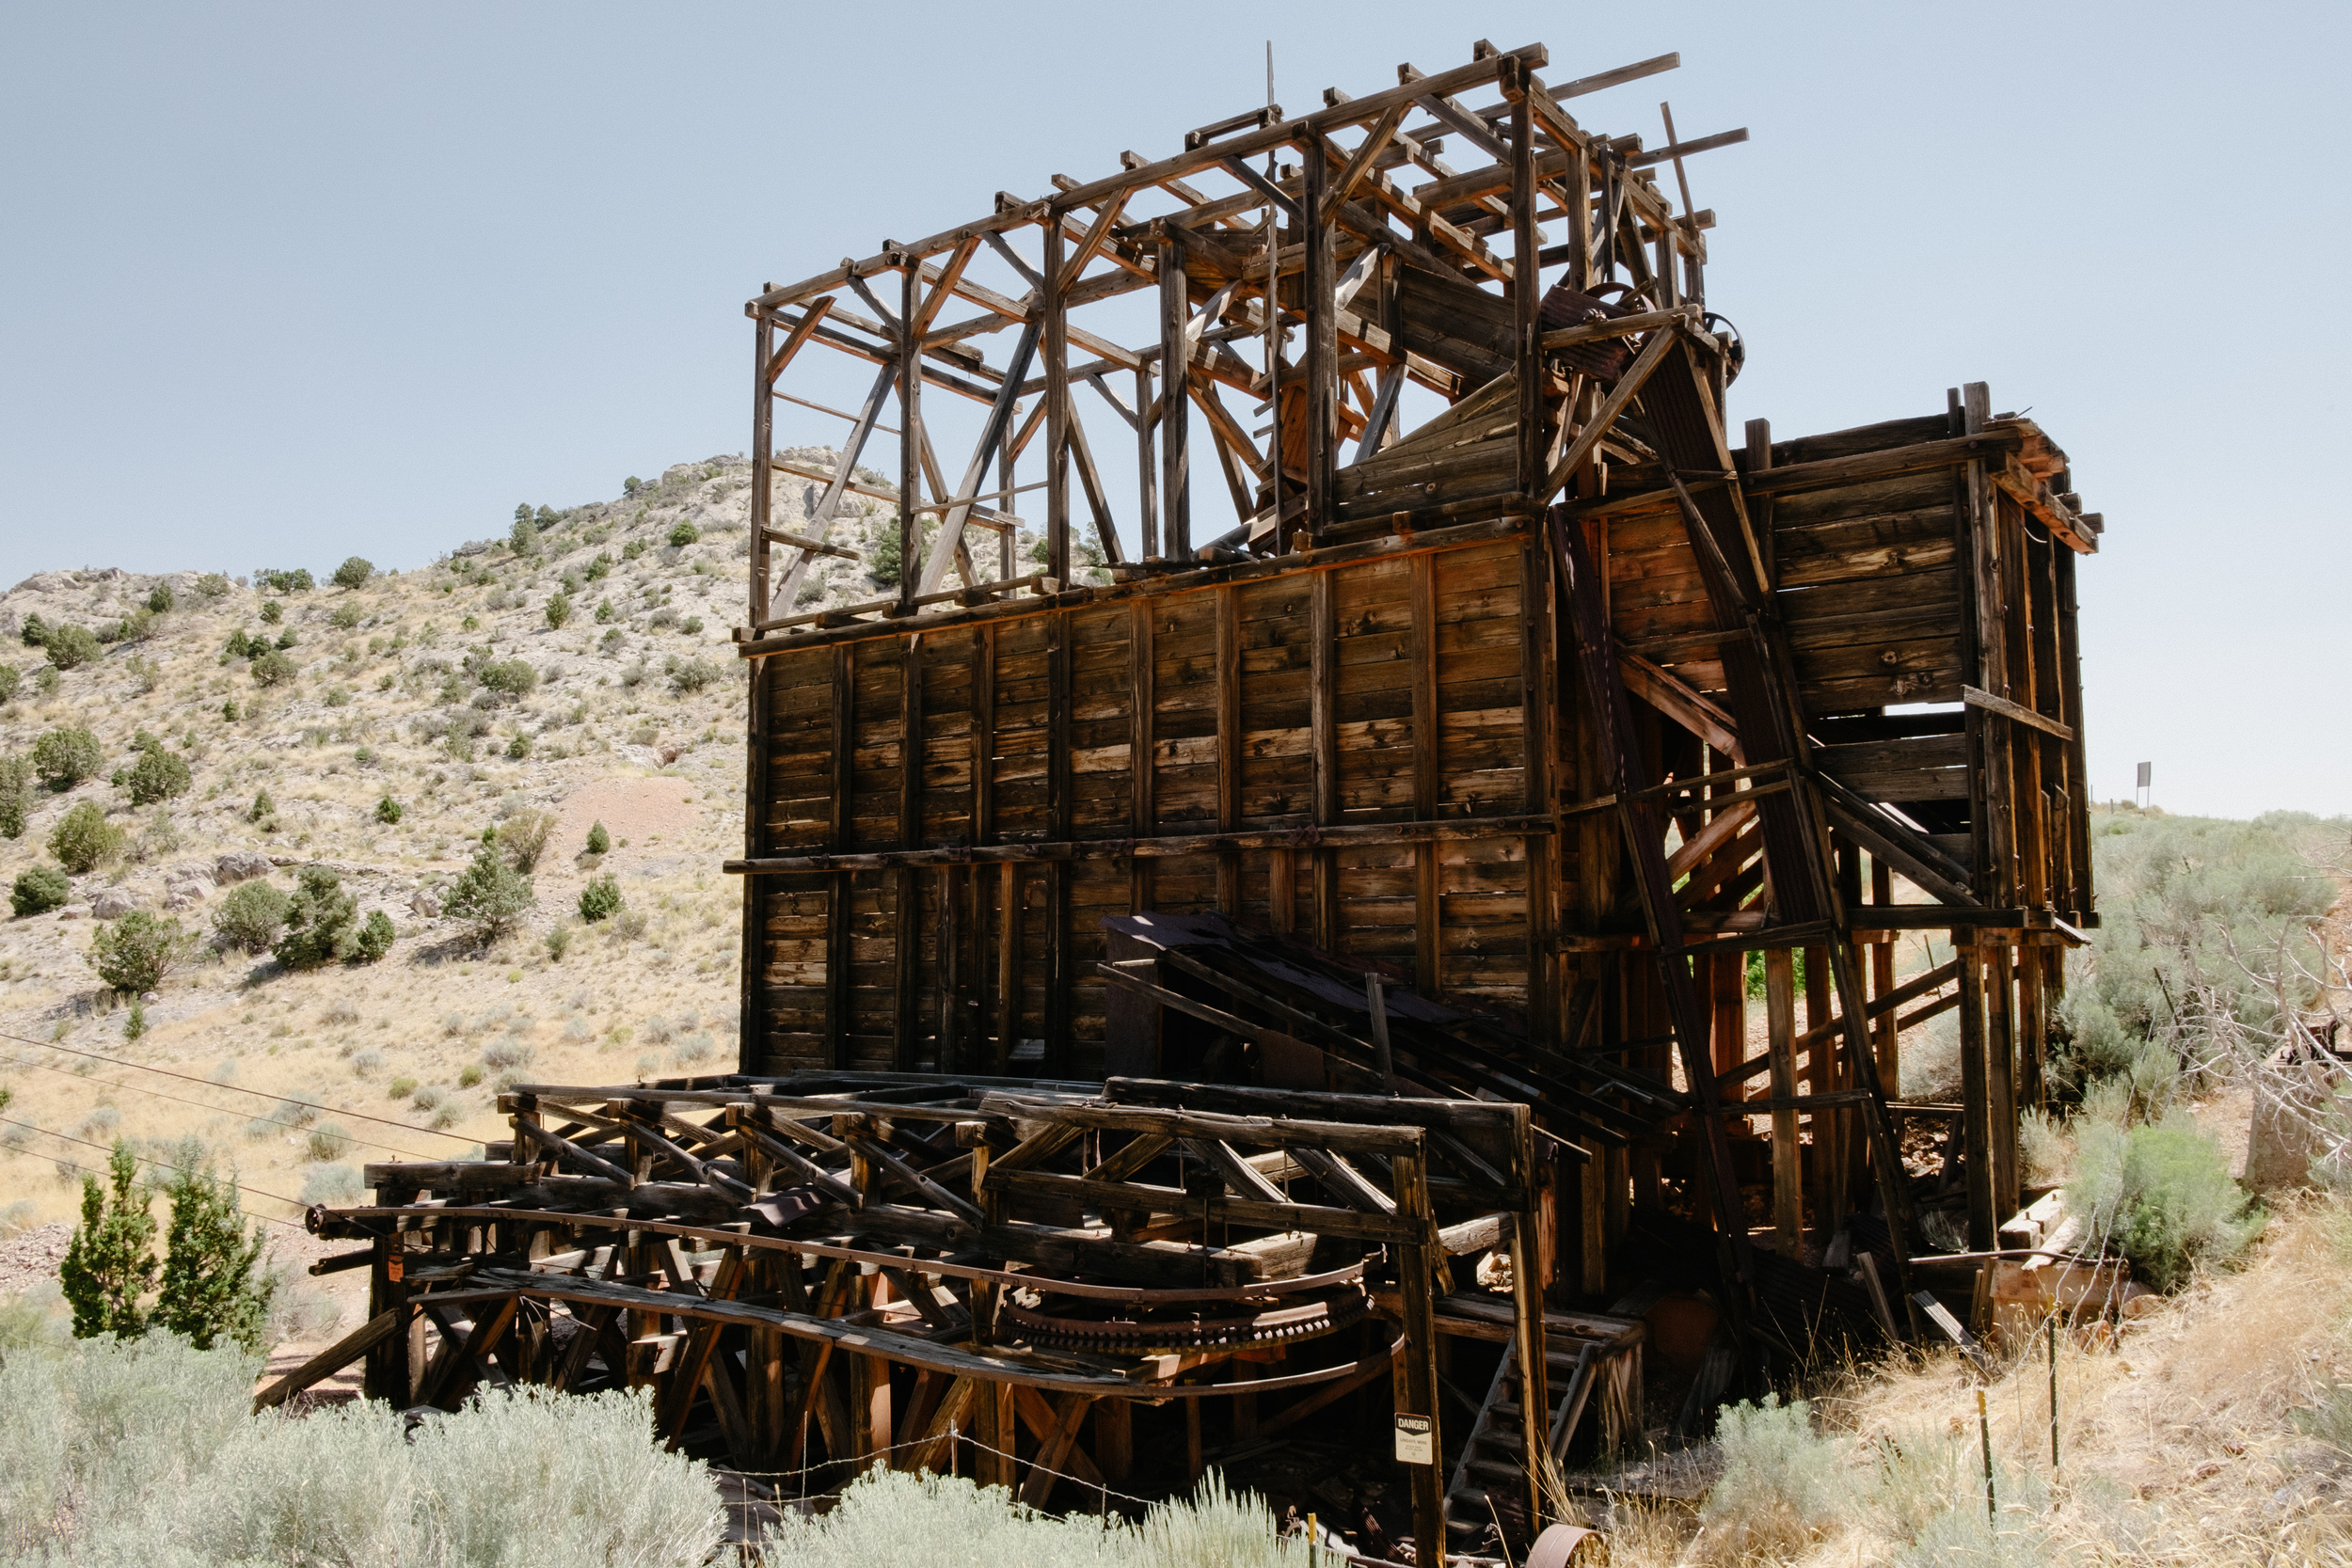 The old mine bucket tram still stands with cables stretching over parts of the town.